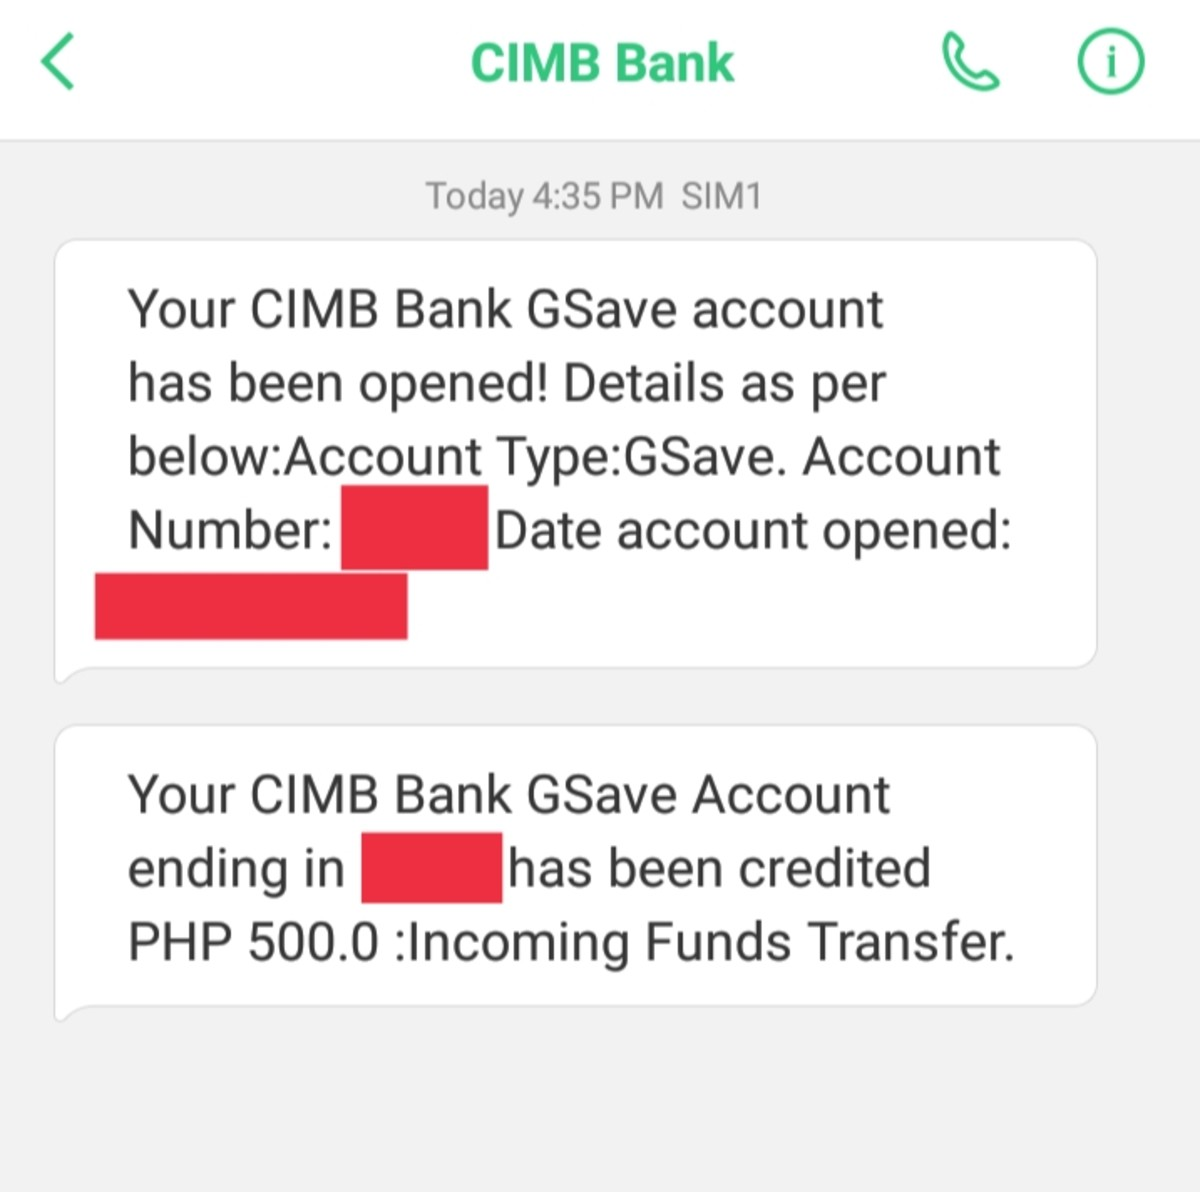 SMS notifications from CIMB Bank